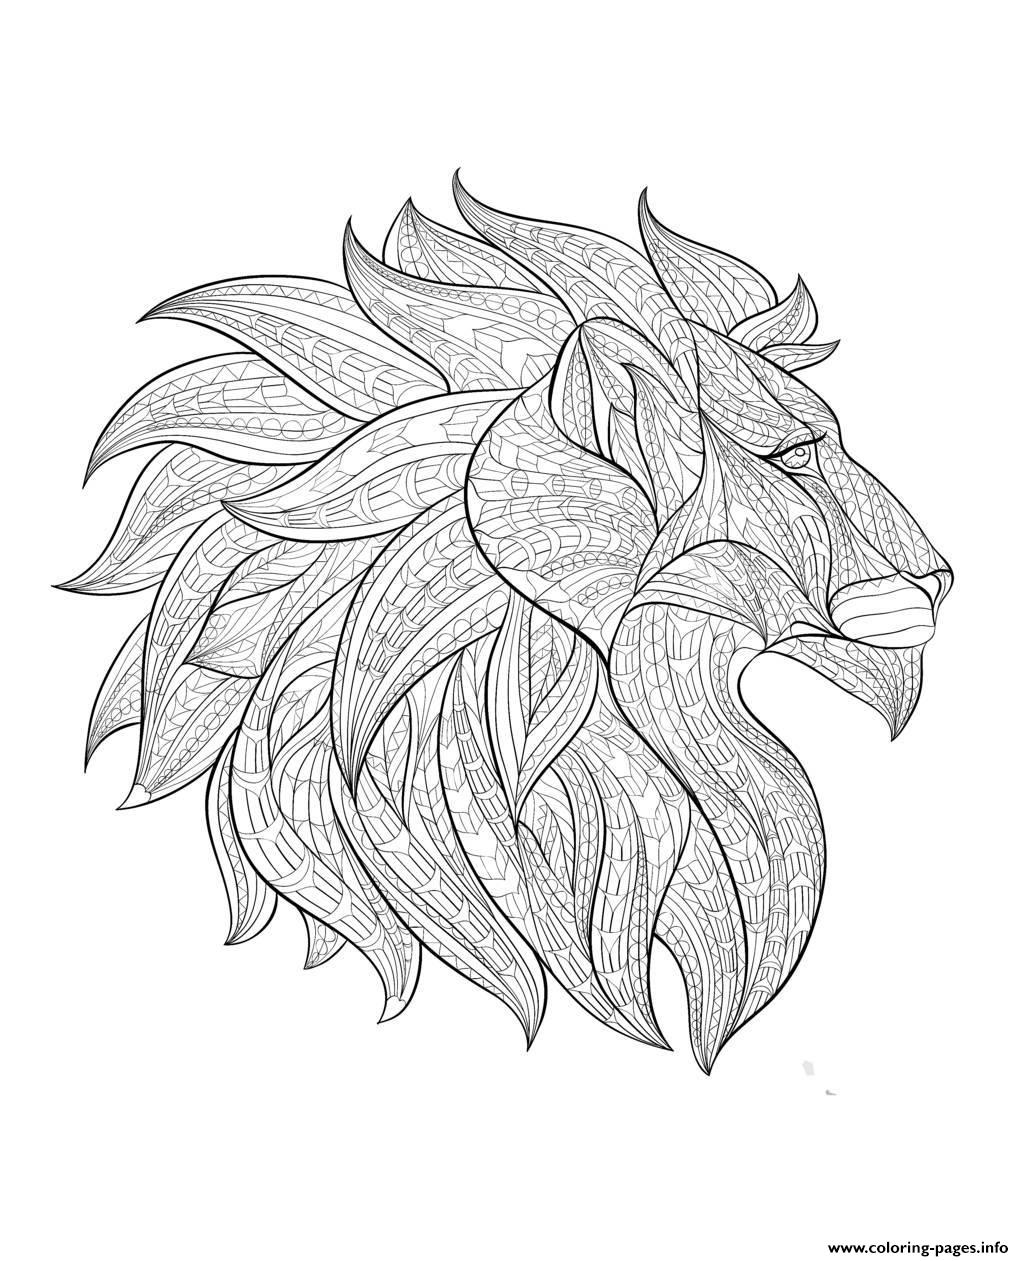 Adult Africa Lion Head Profile Coloring Pages